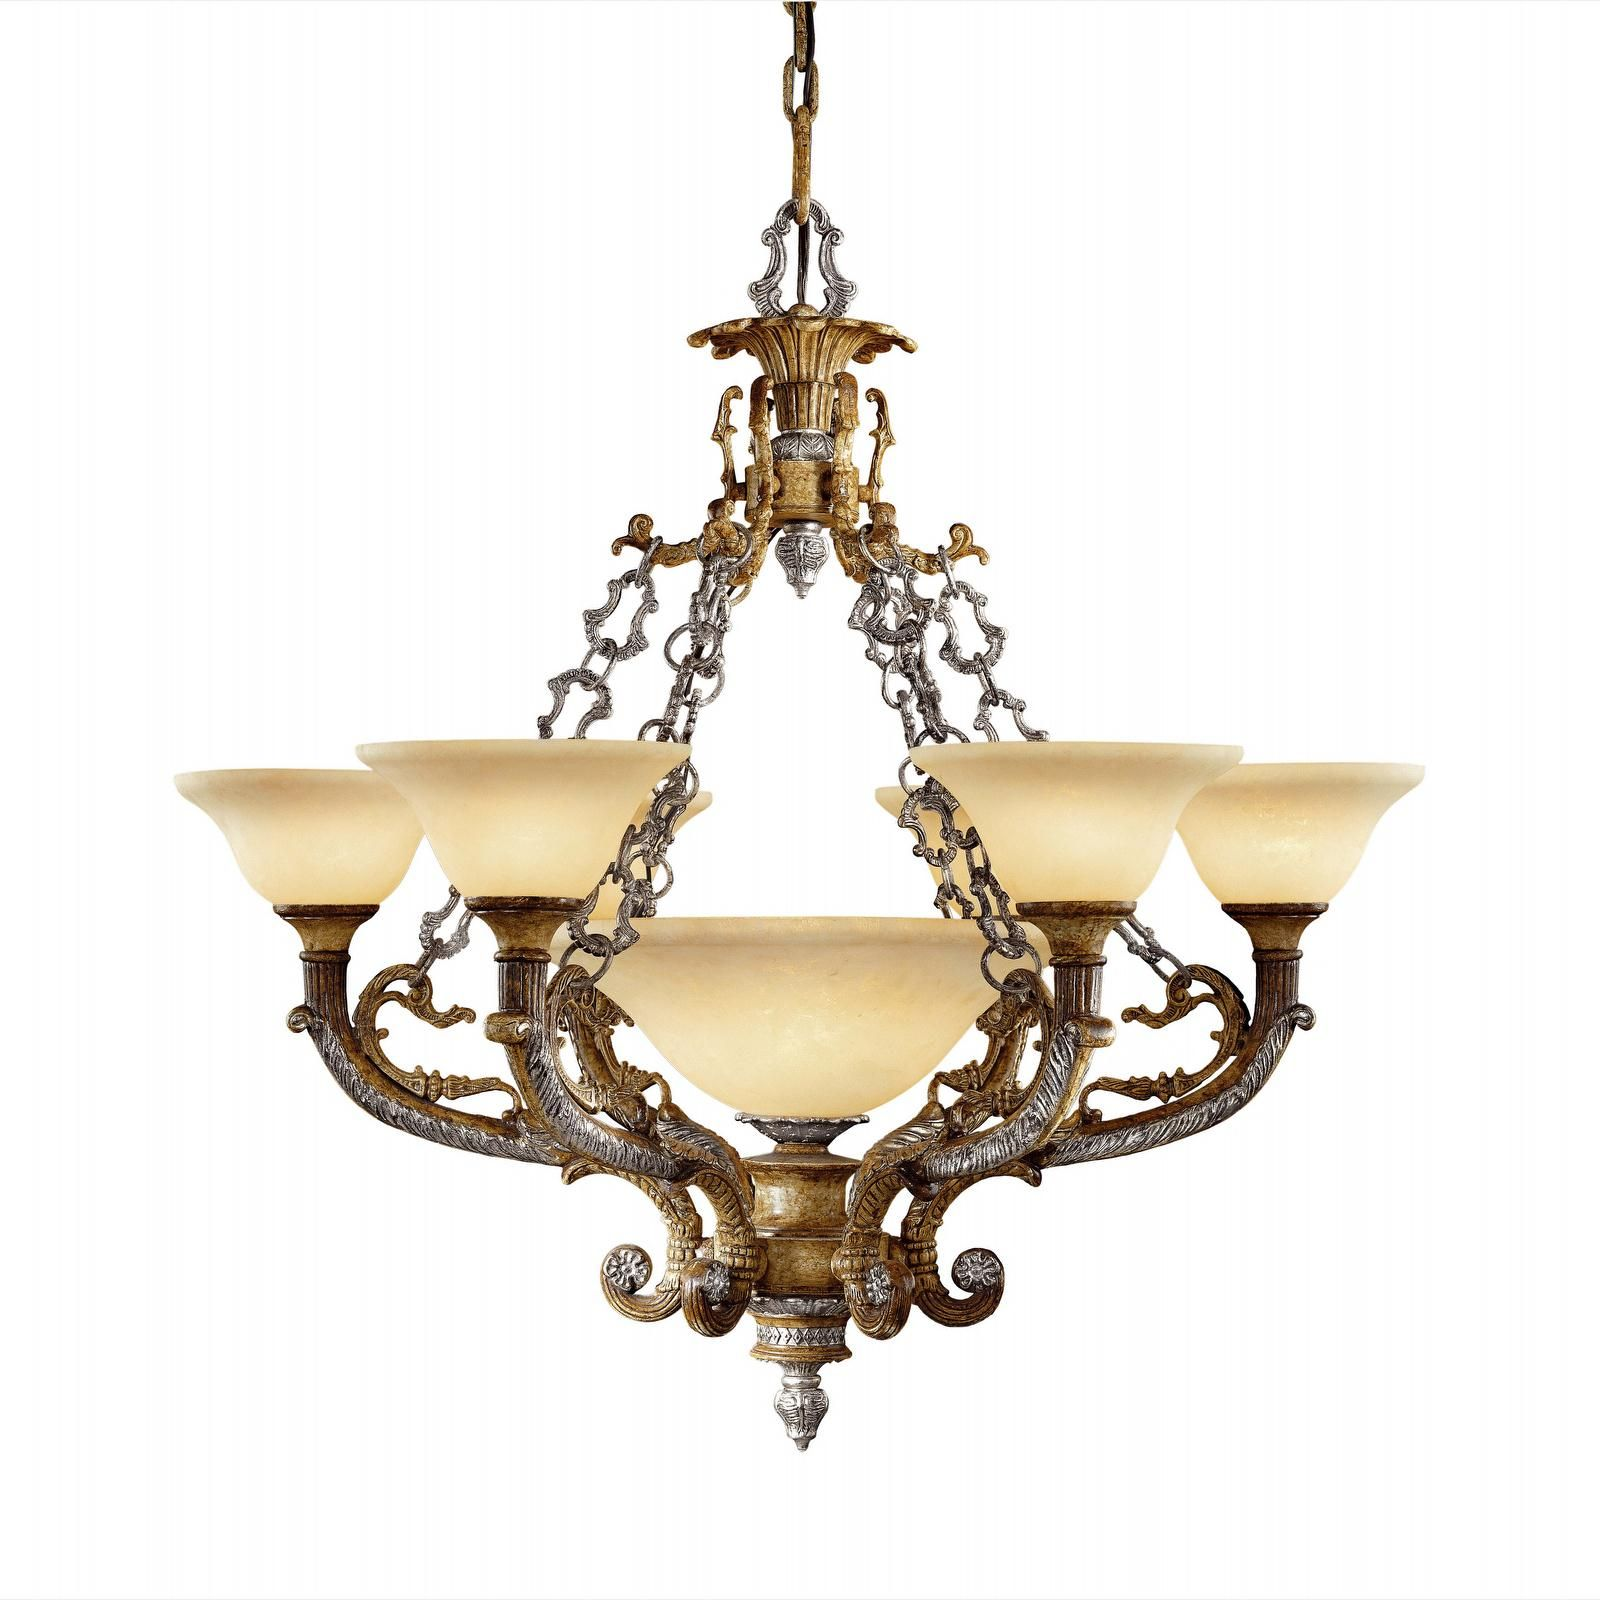 Tuscan chandelier OLD WORLD Light Fixtures